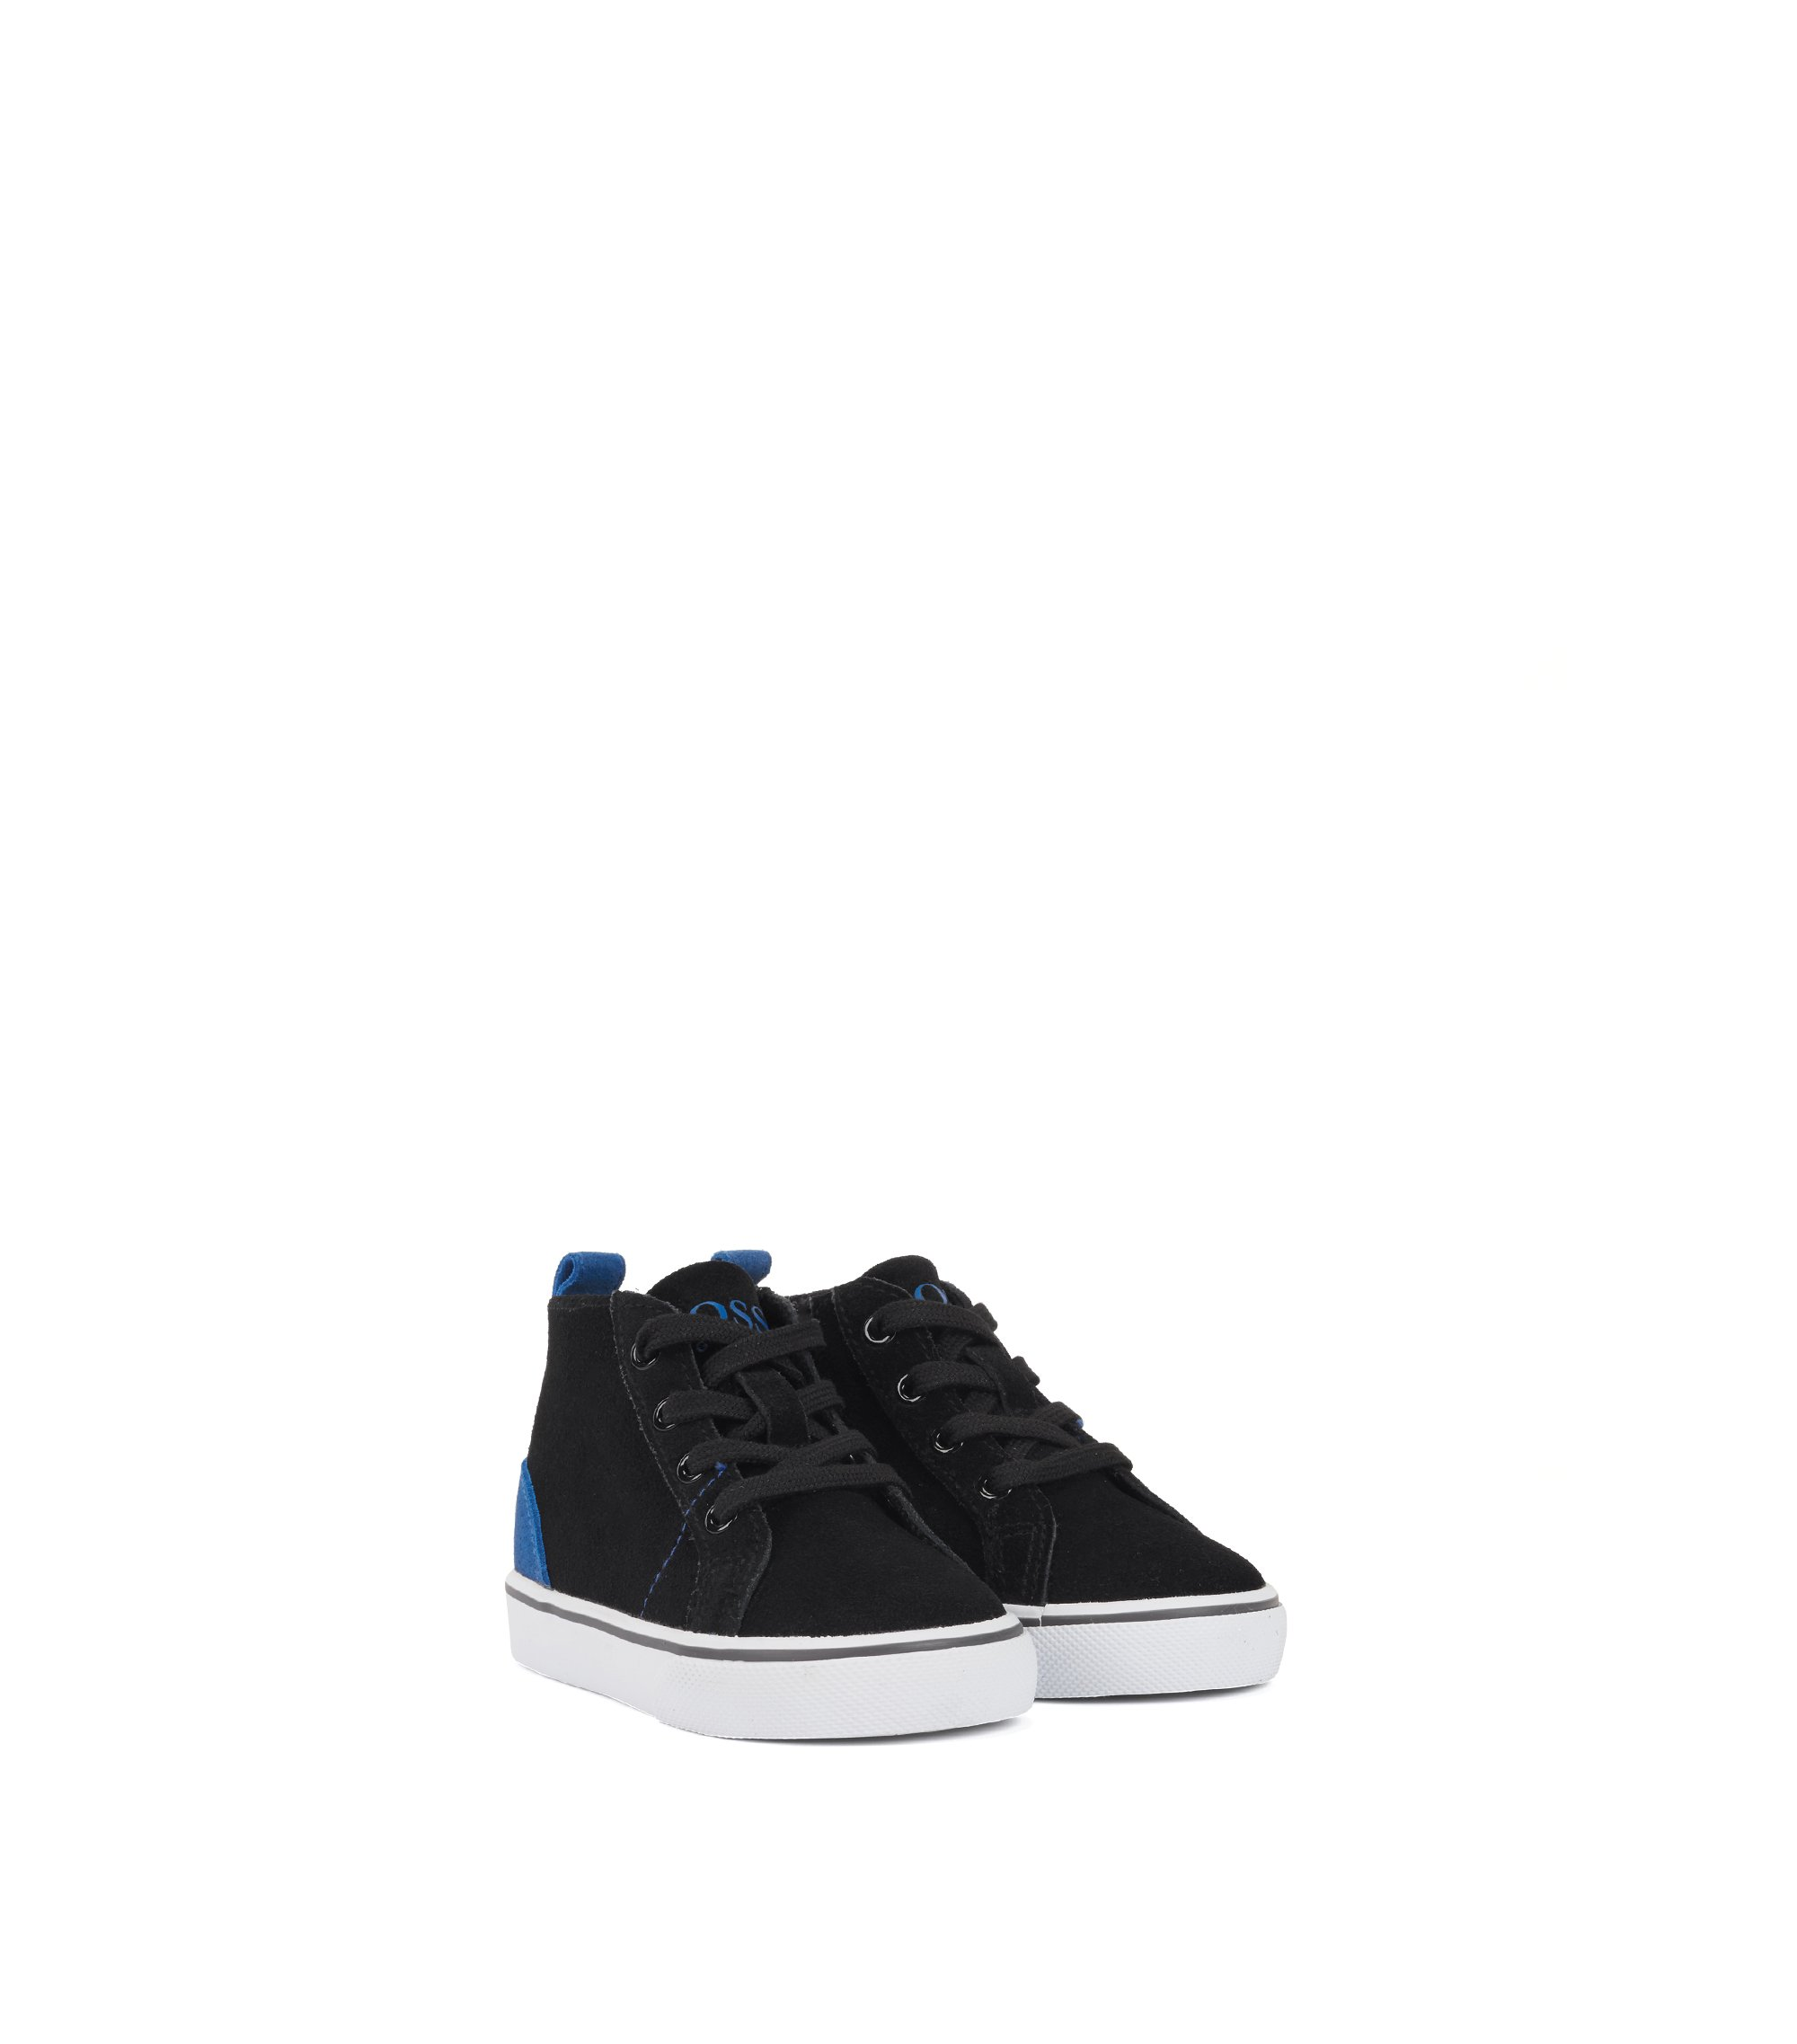 Kids' high-top trainers in suede with contrast details, Black